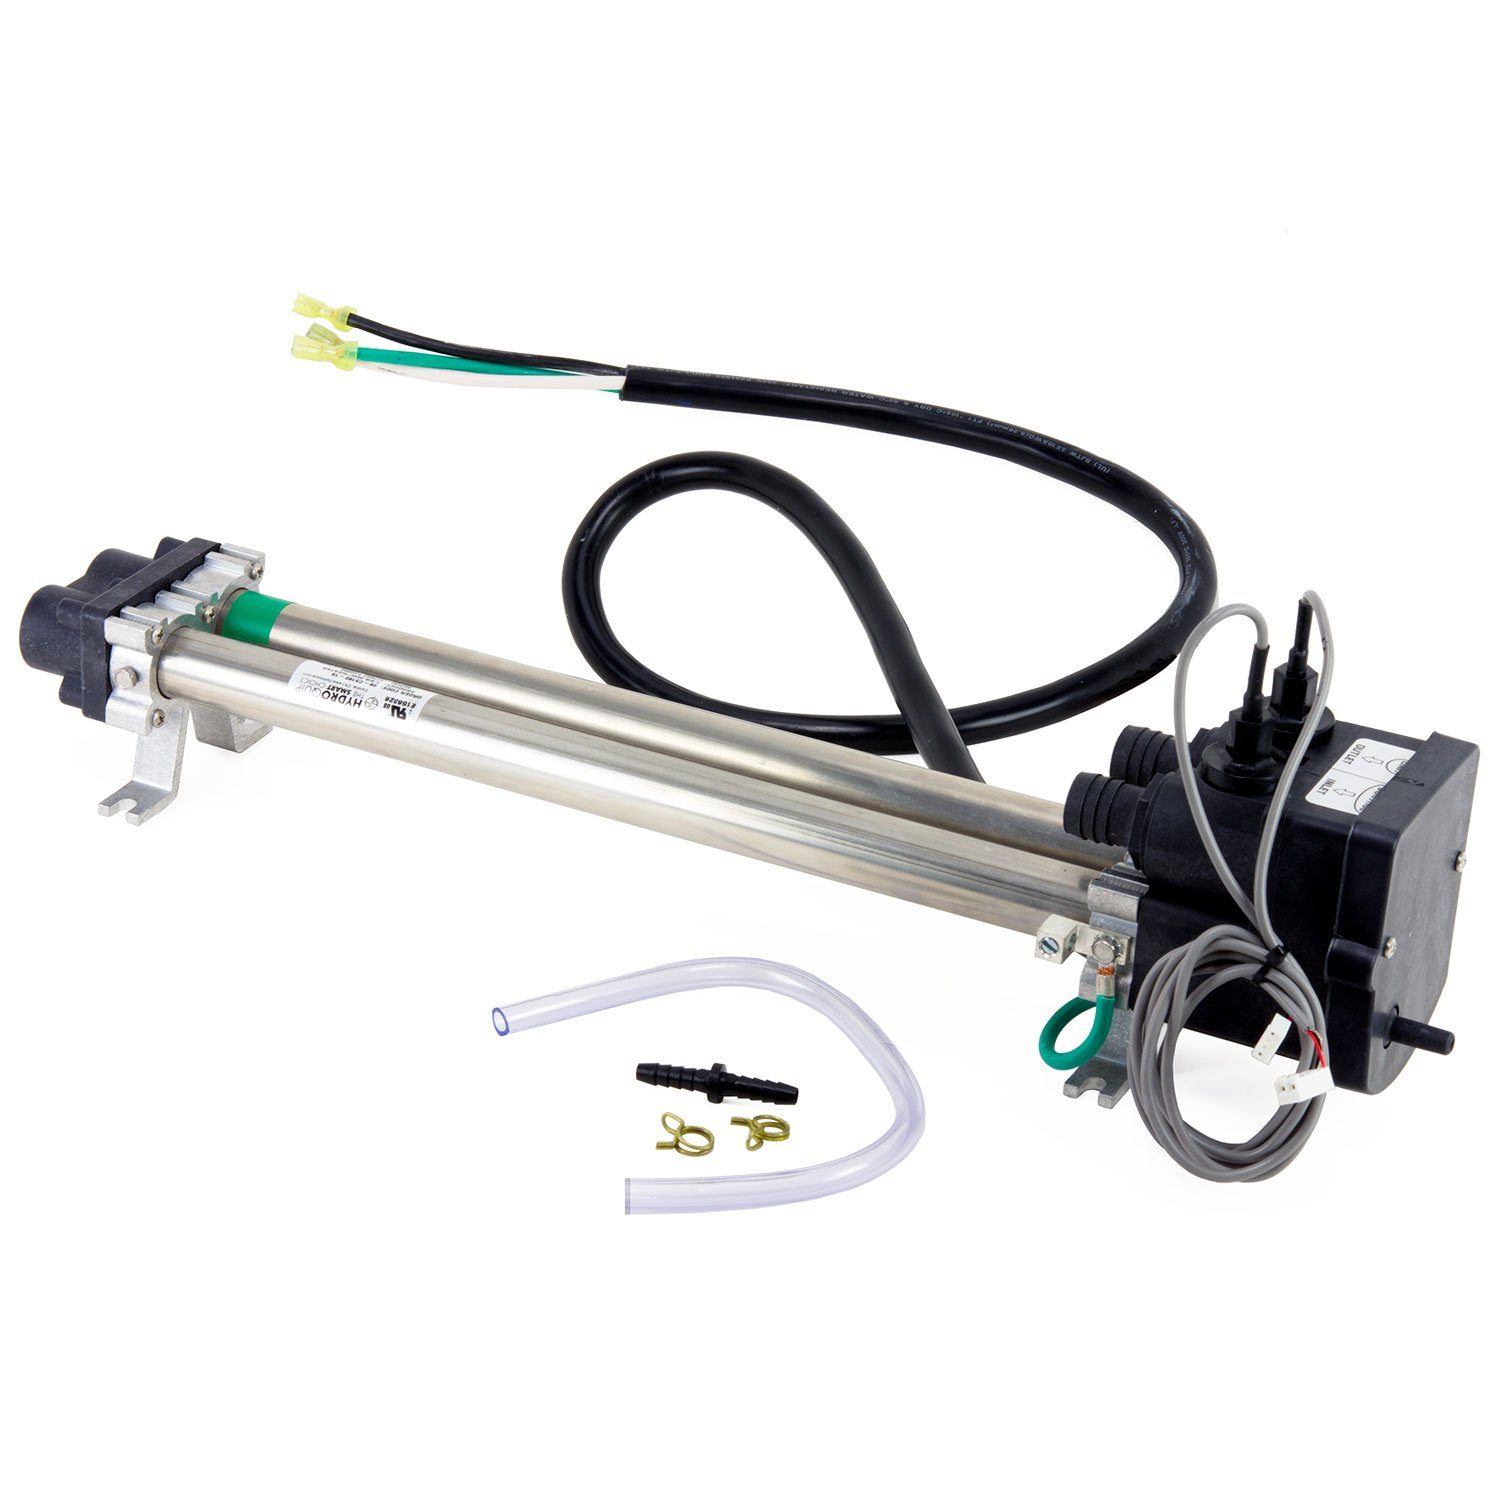 Low-Flow Titanium Heater w/Sensors for Hot Spring/Watkins/Tiger River/Limelight Hot Tub Spa No-Fault 6kW